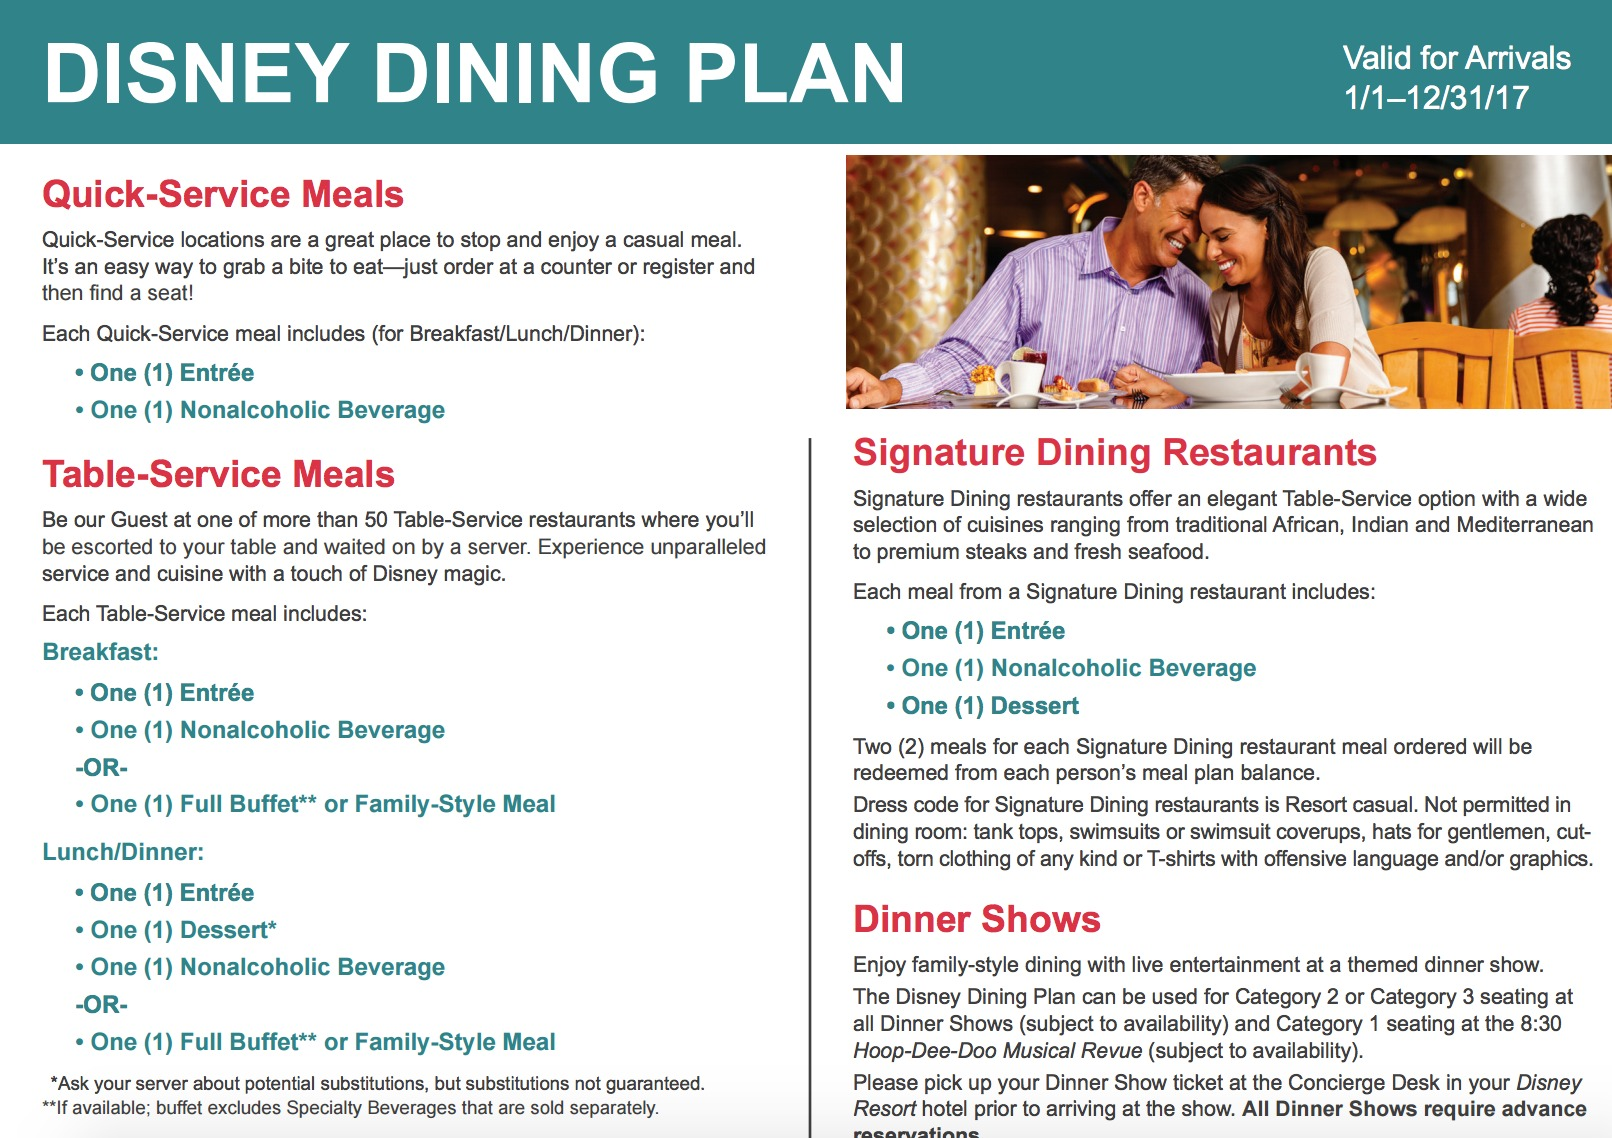 how to add disney dining plan to reservation